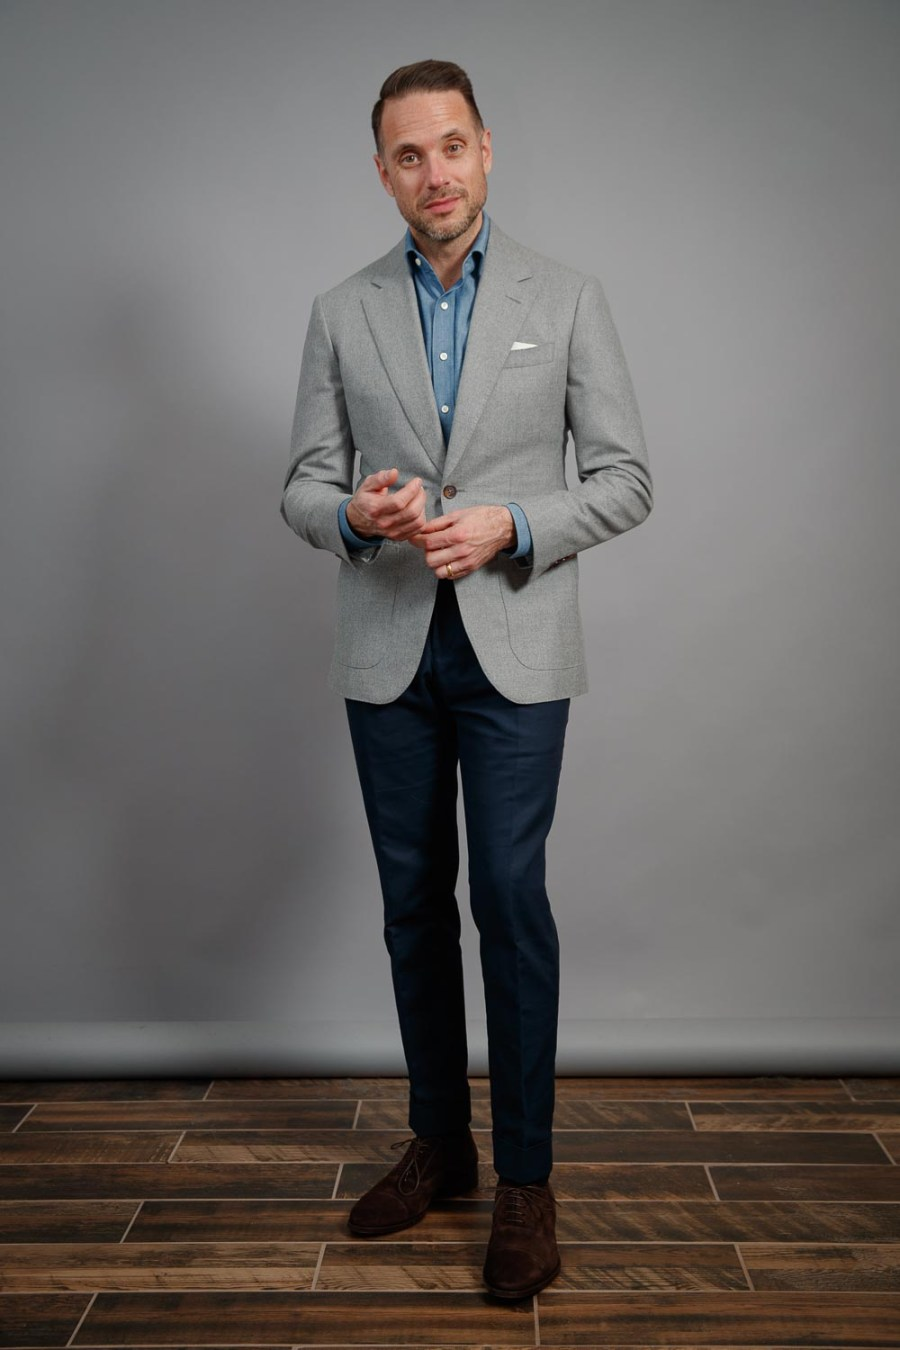 business casual outfit ideas men 2021